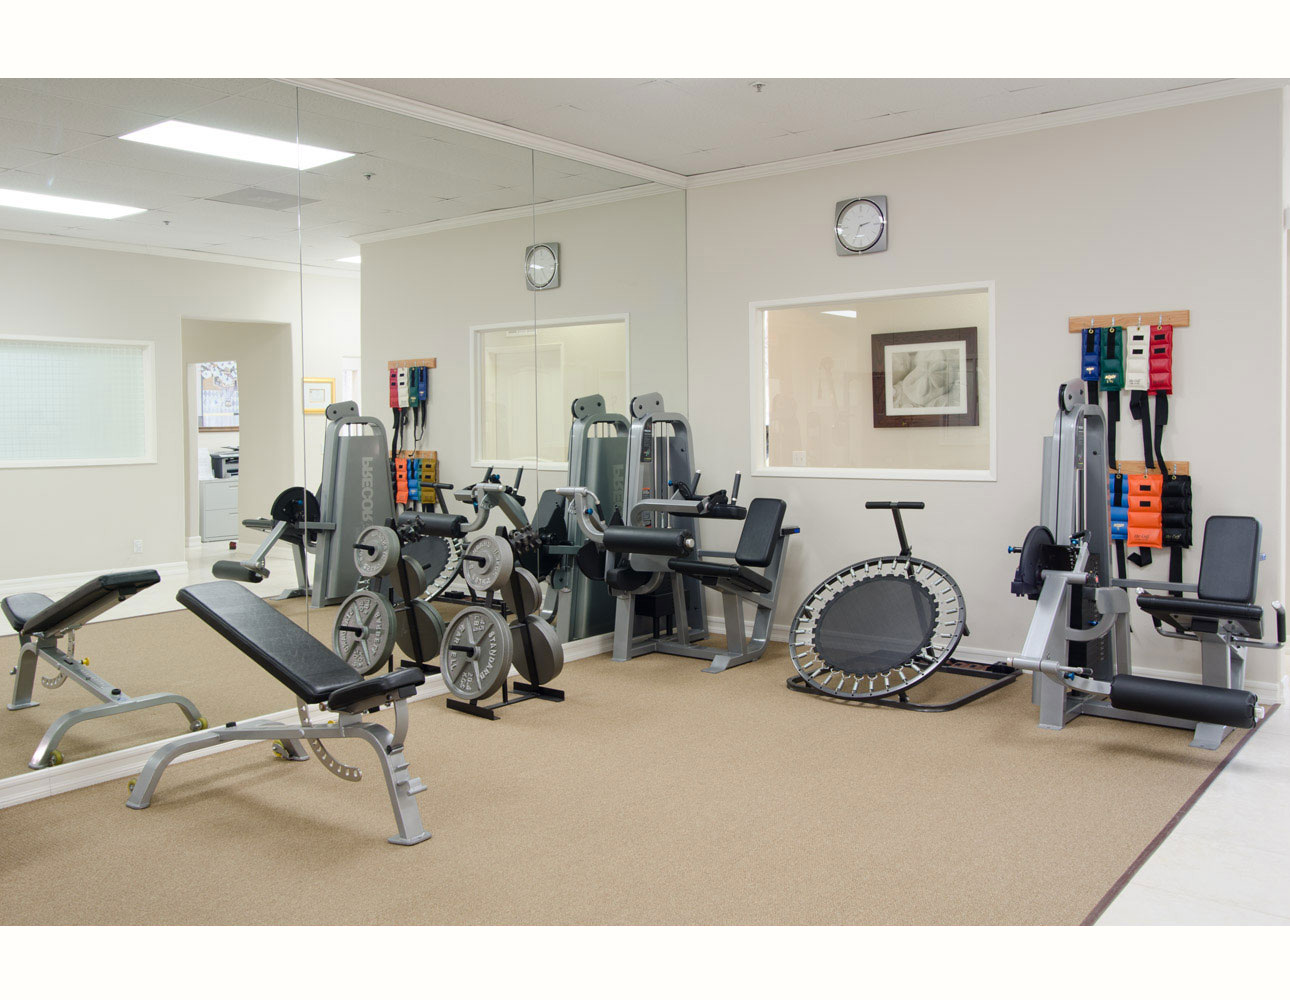 Equipment exercise physical therapy - Physical Therapy Equipment Room